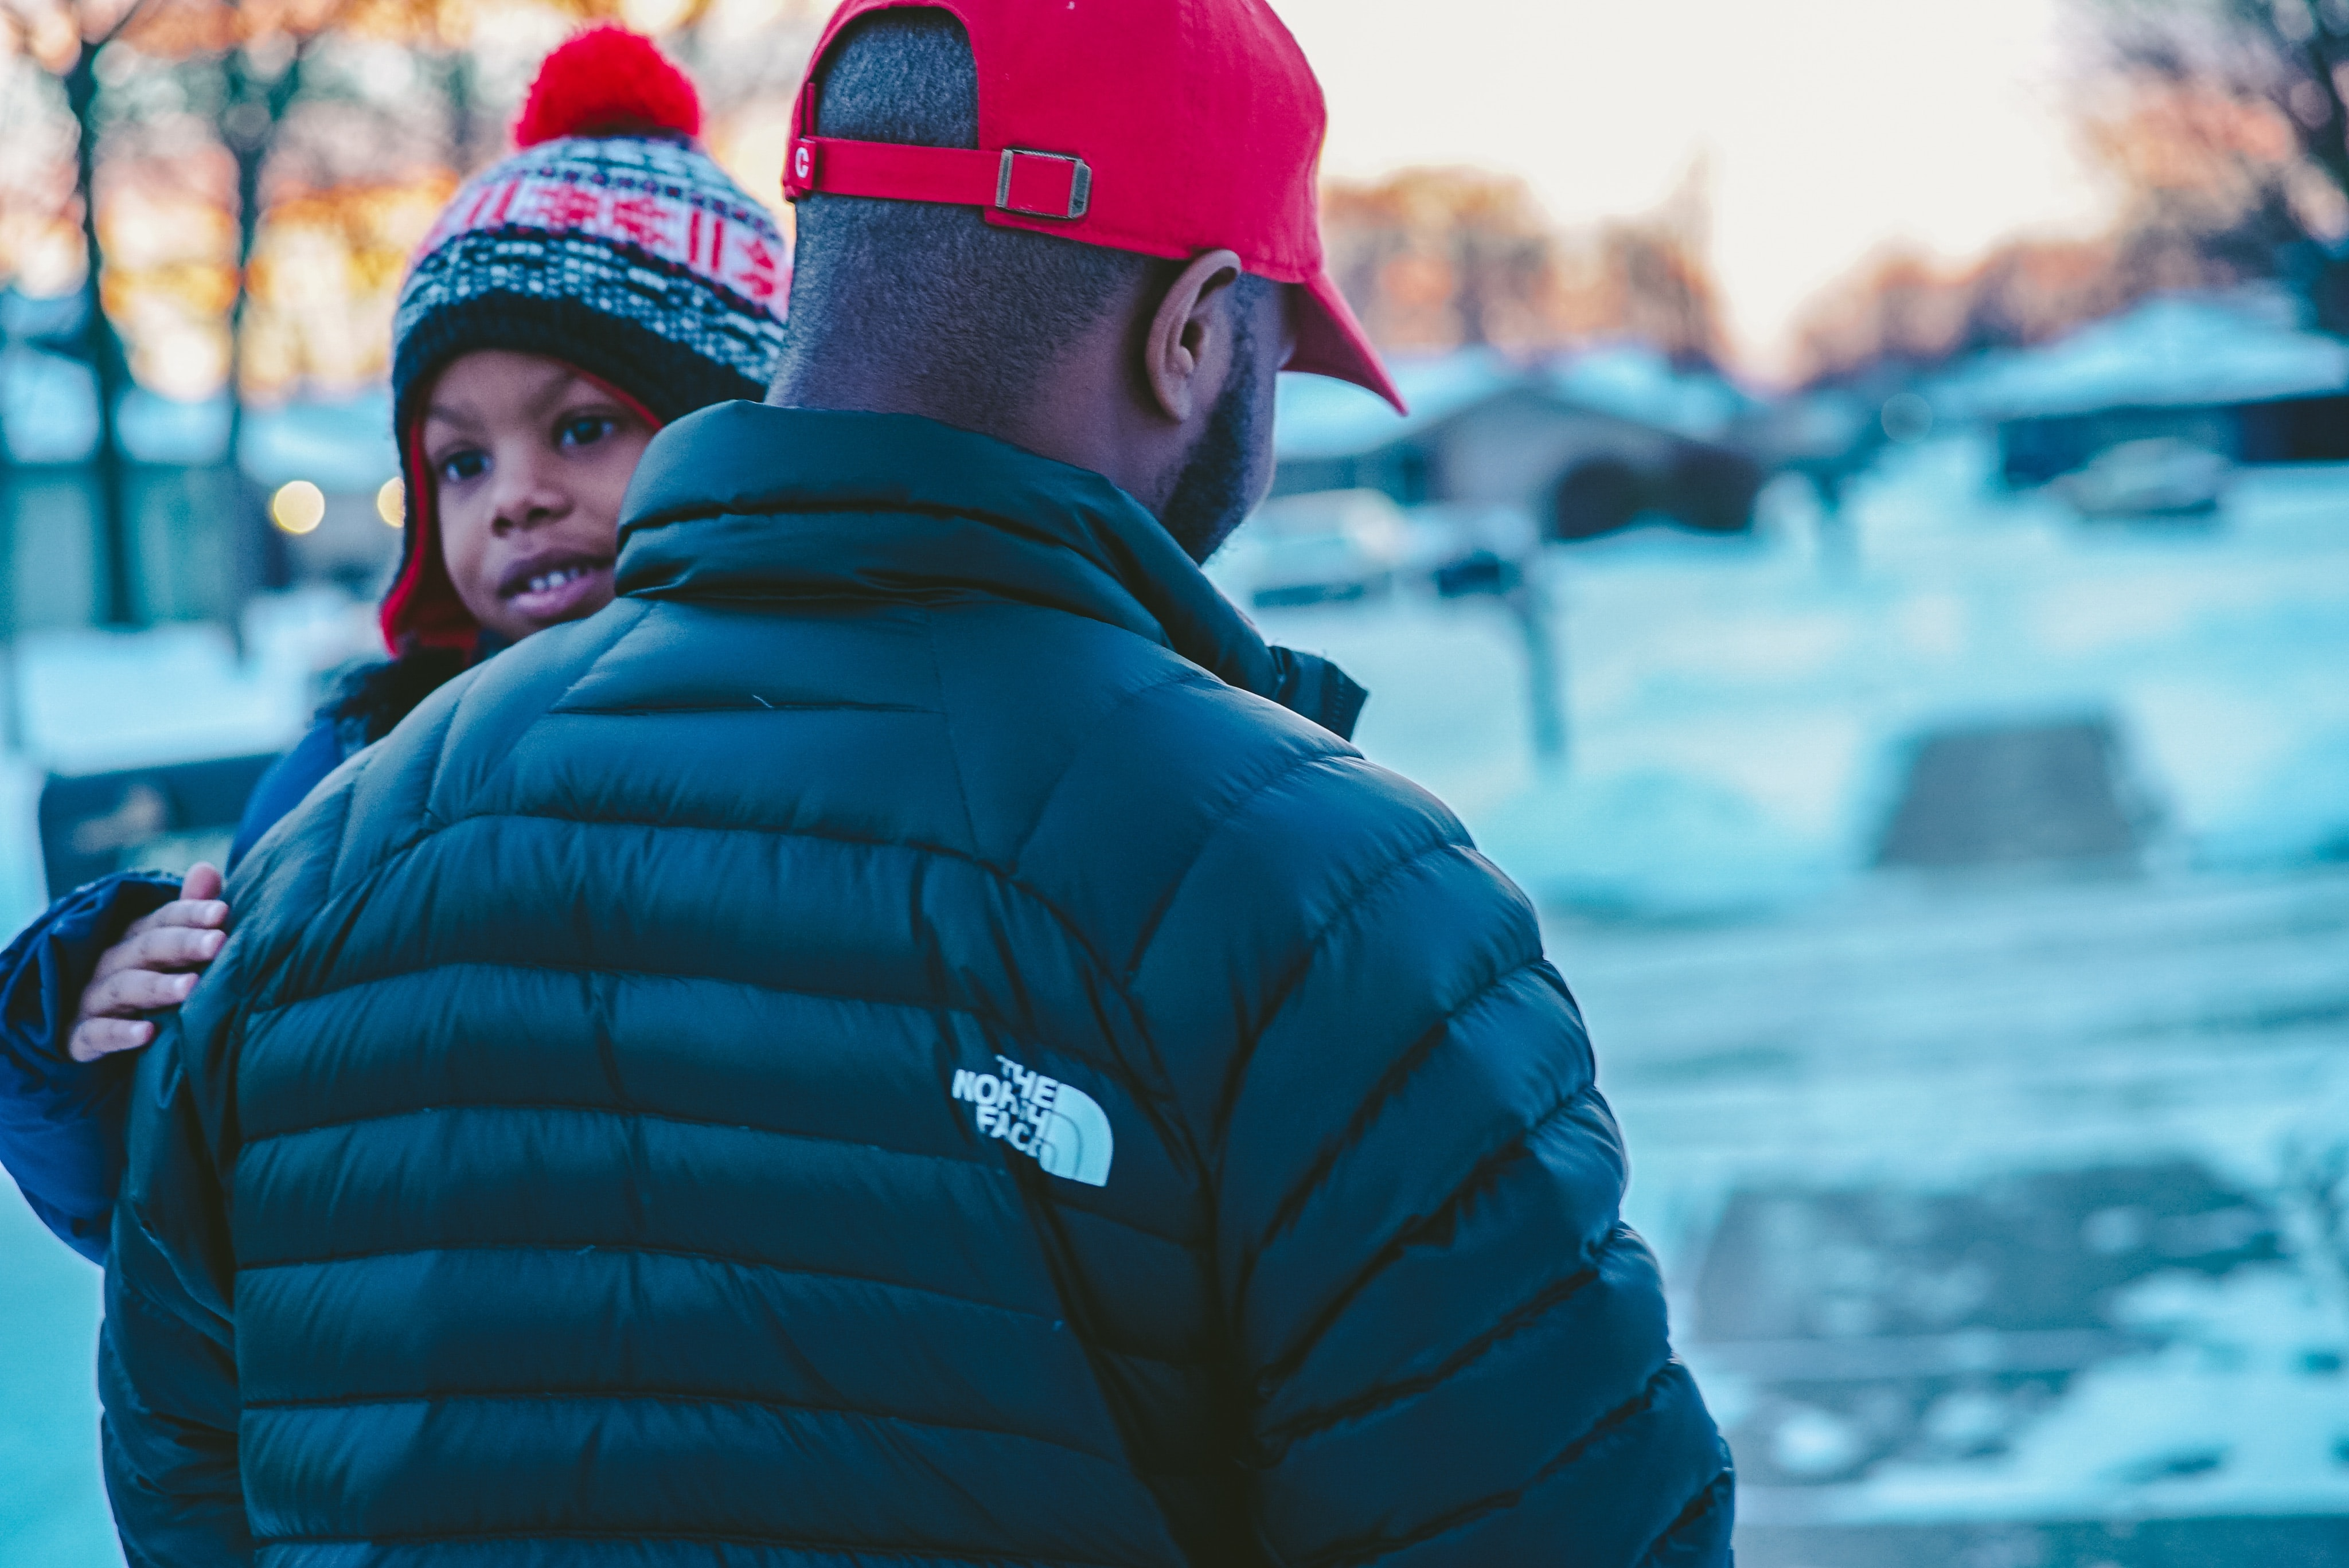 Man carrying child outside wearing winter clothes